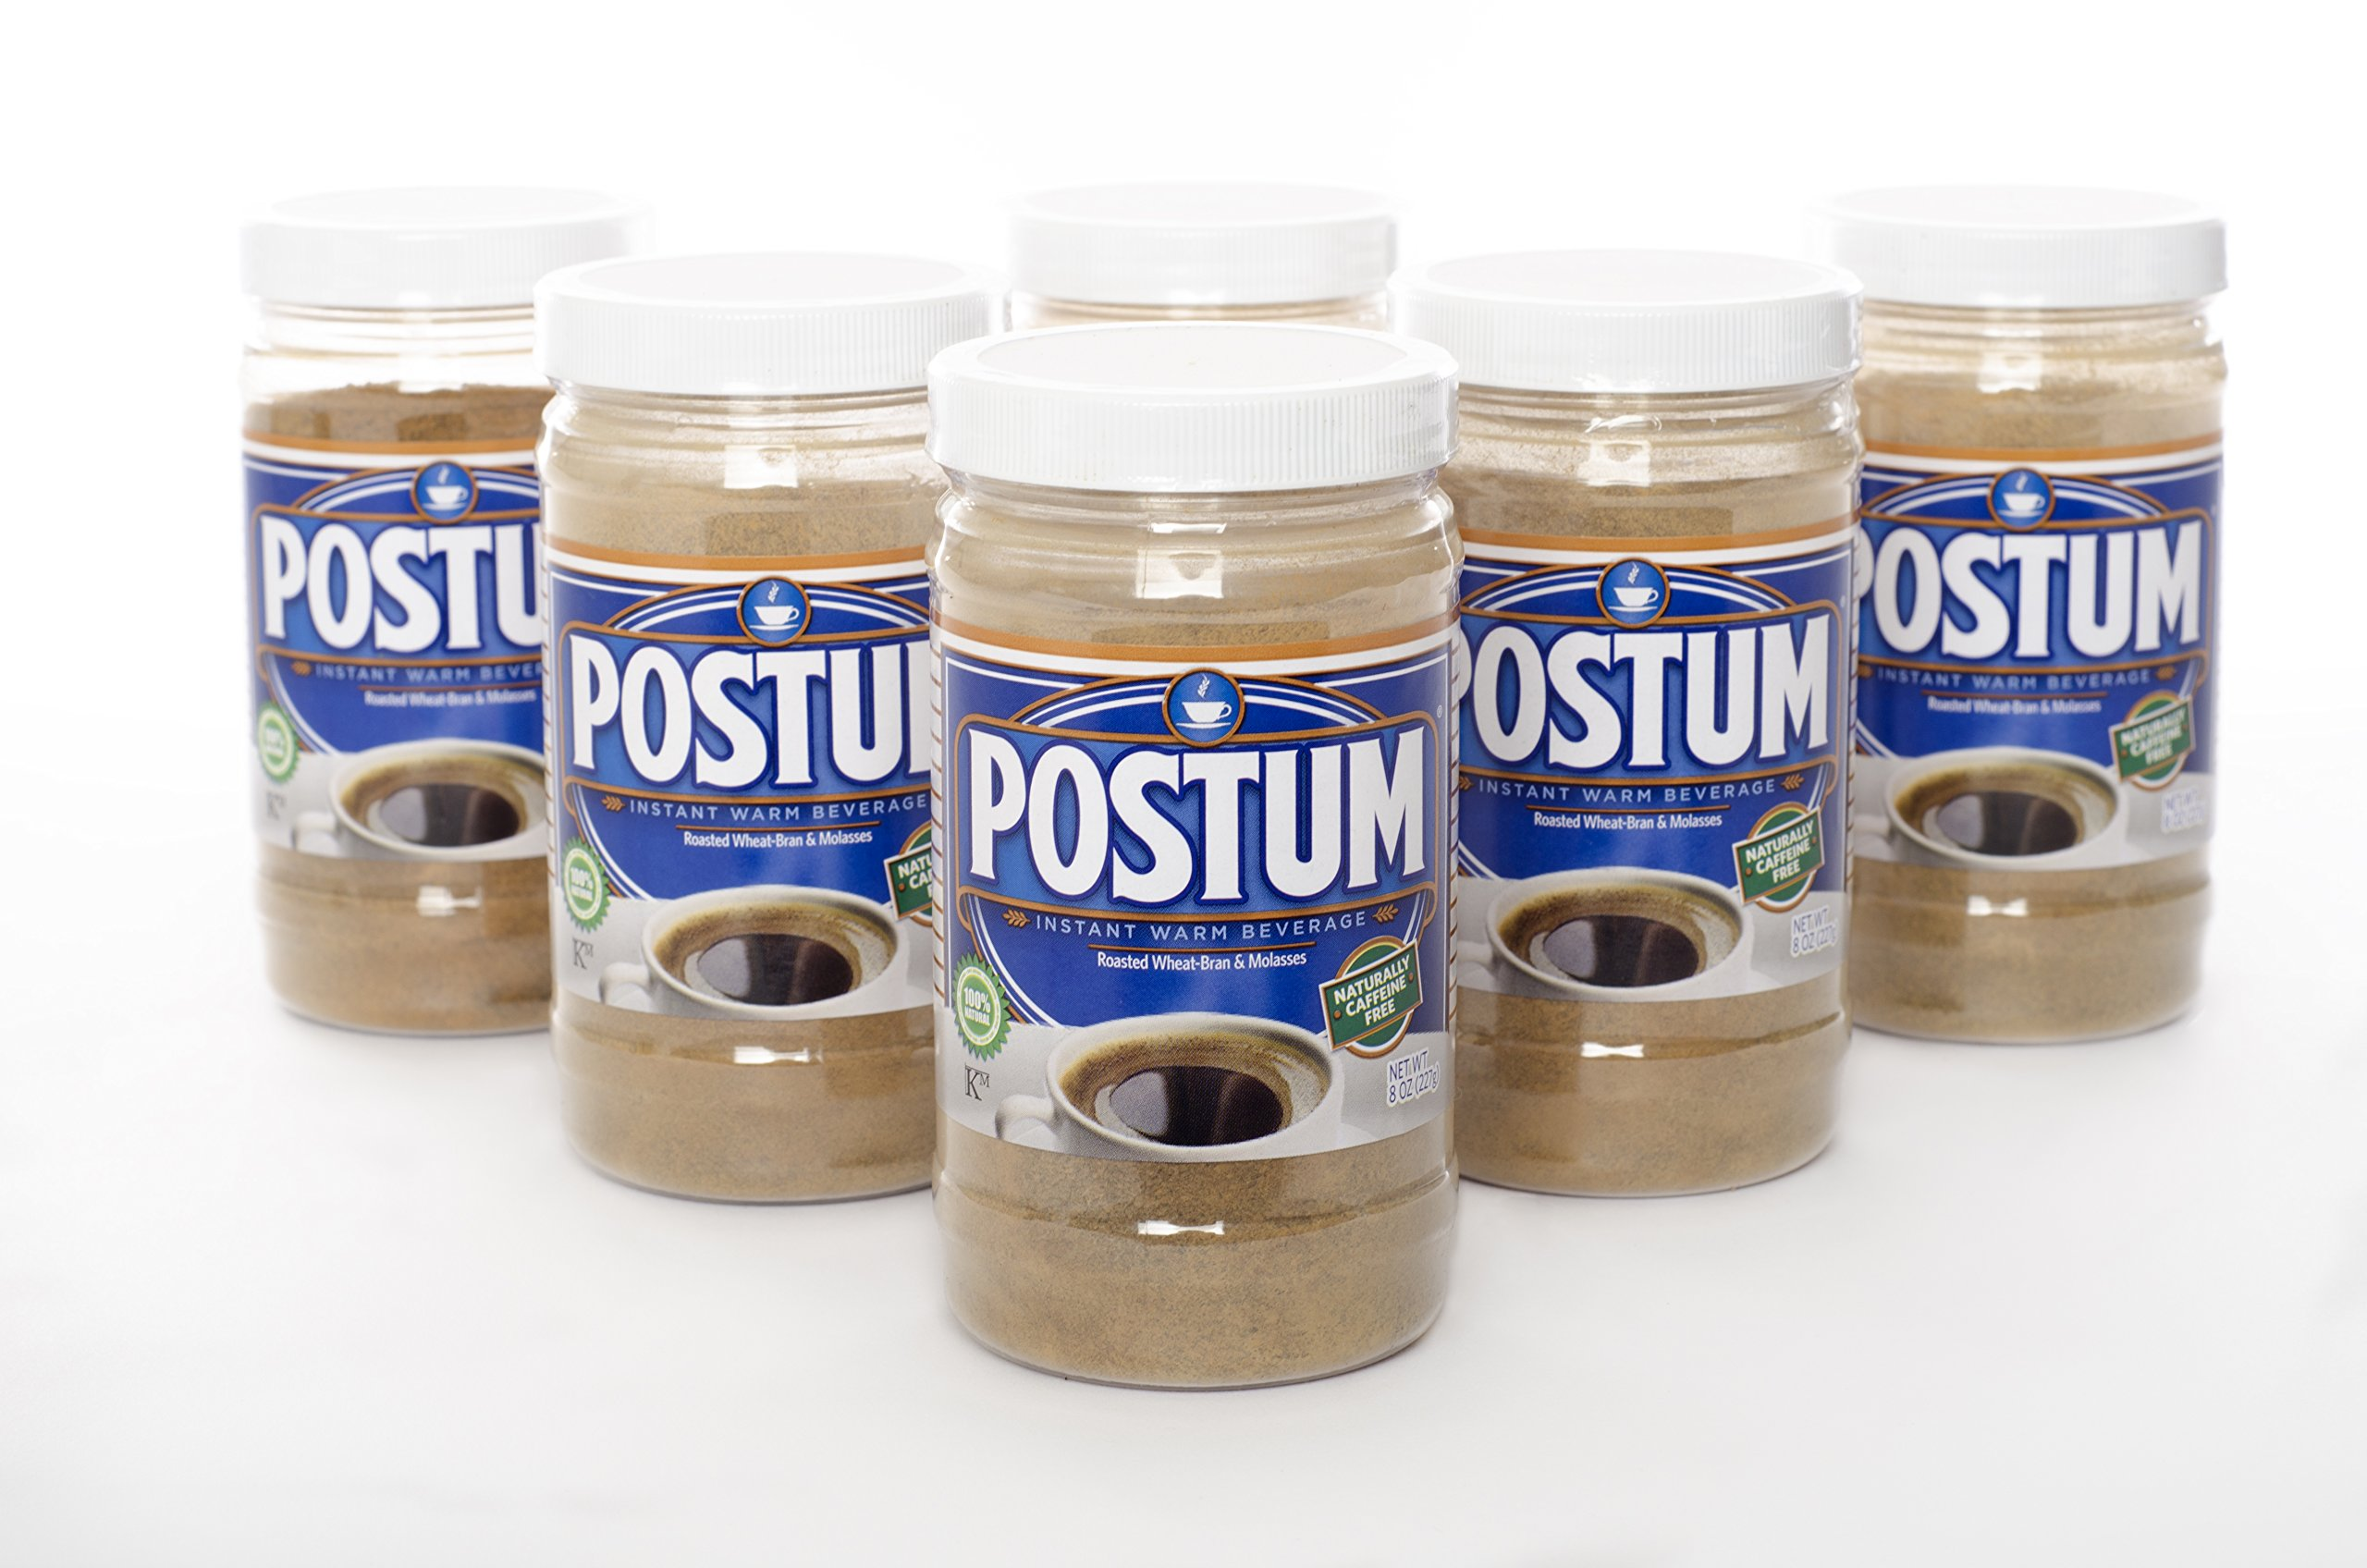 Postum 8 Oz. Roasted Wheat-Bran & Molasses Instant Warm Beverage, Pack of 6